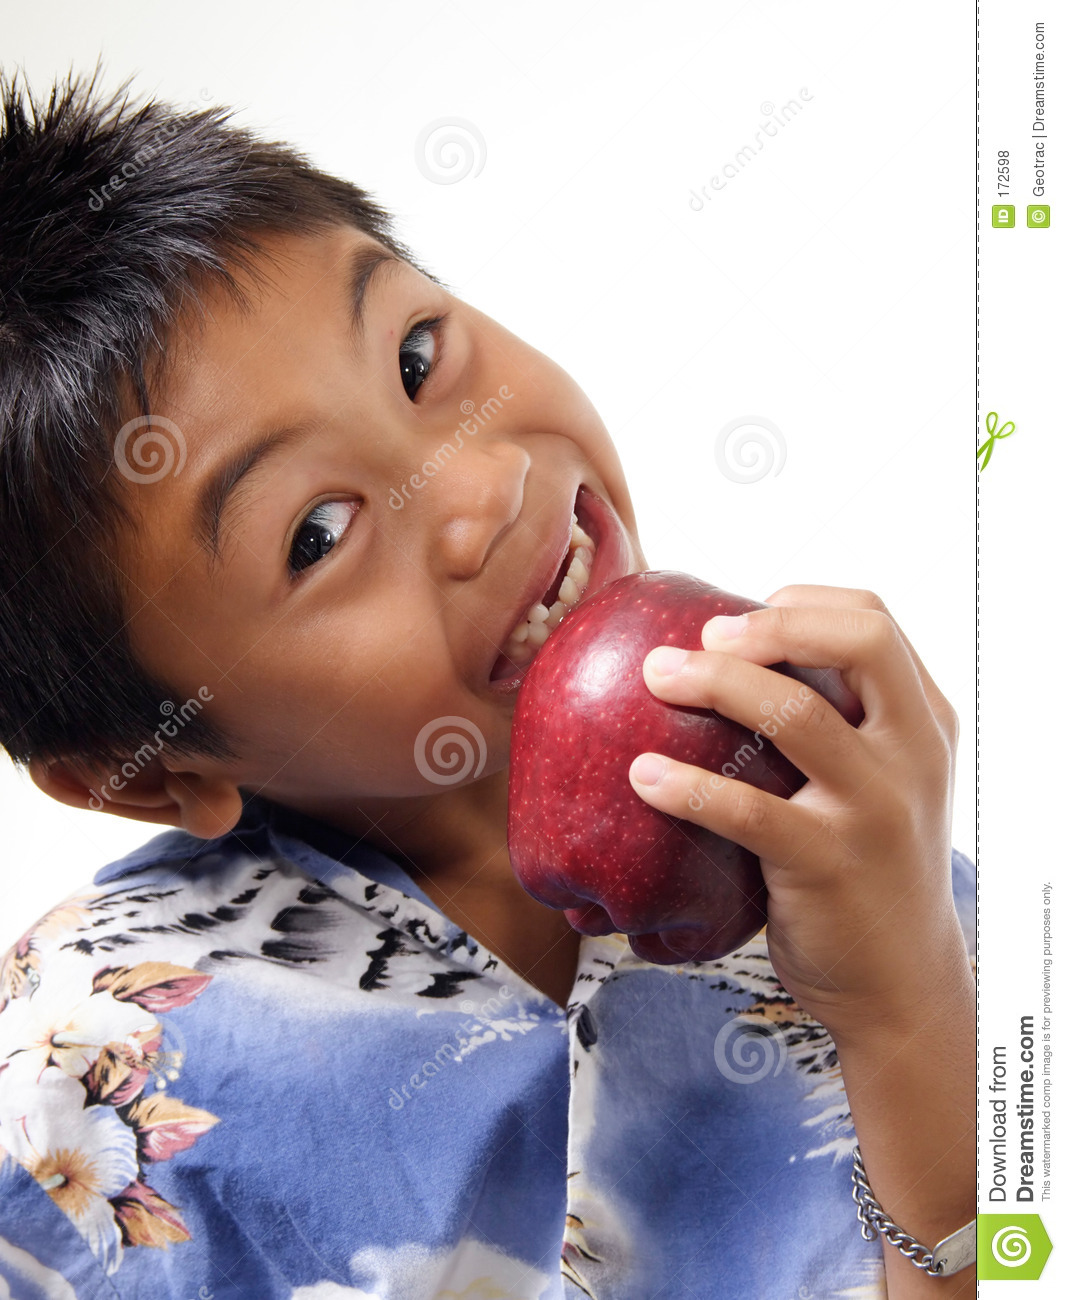 Child biting on apple